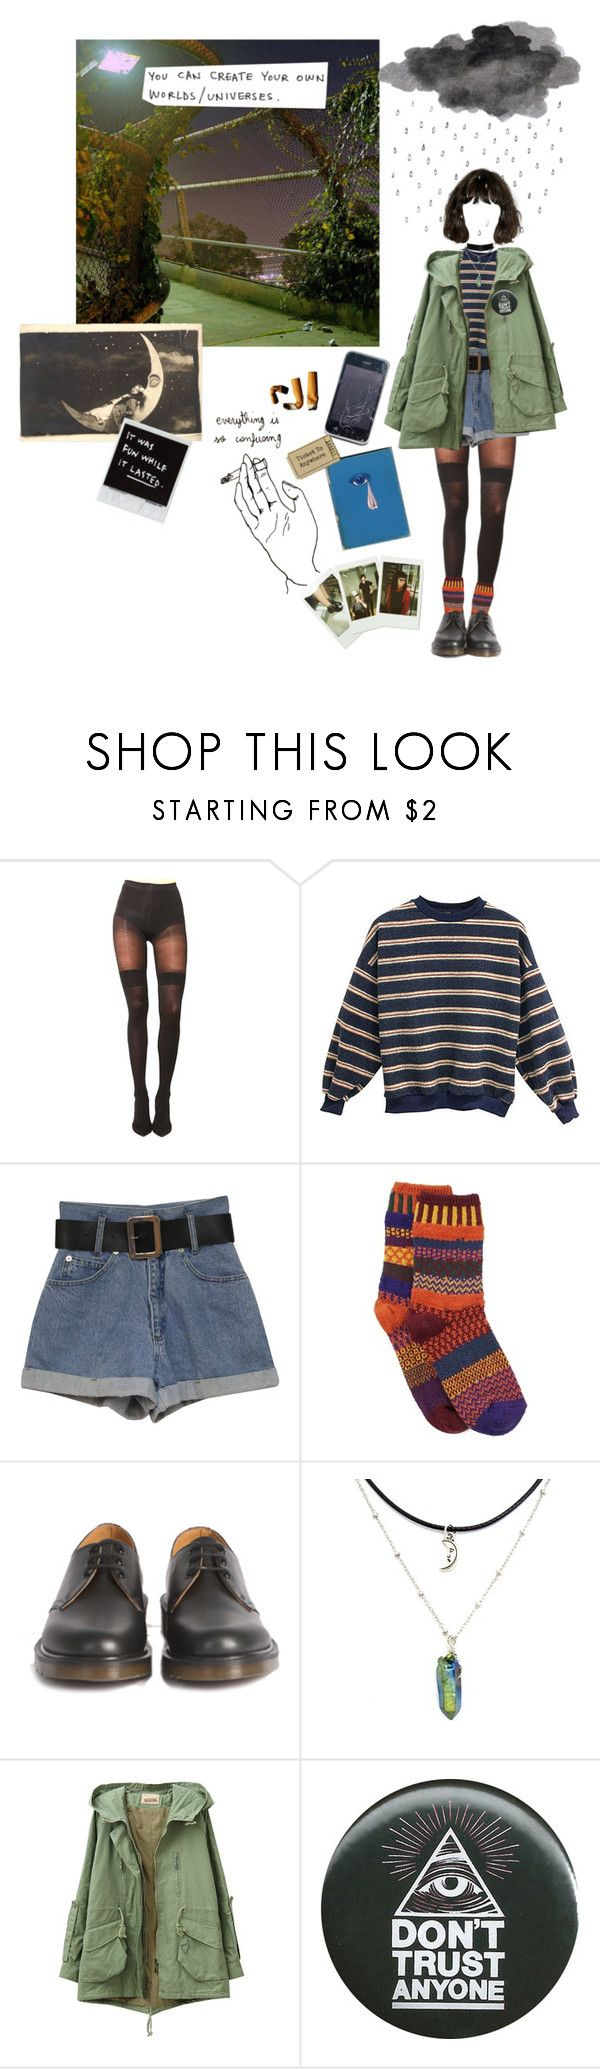 """""""am I transcending human existance?"""" by coffee-and-jazz ❤ liked on Polyvore featuring Pretty Polly, Solmate Socks, Dr. Martens, LIST and Fujifilm"""